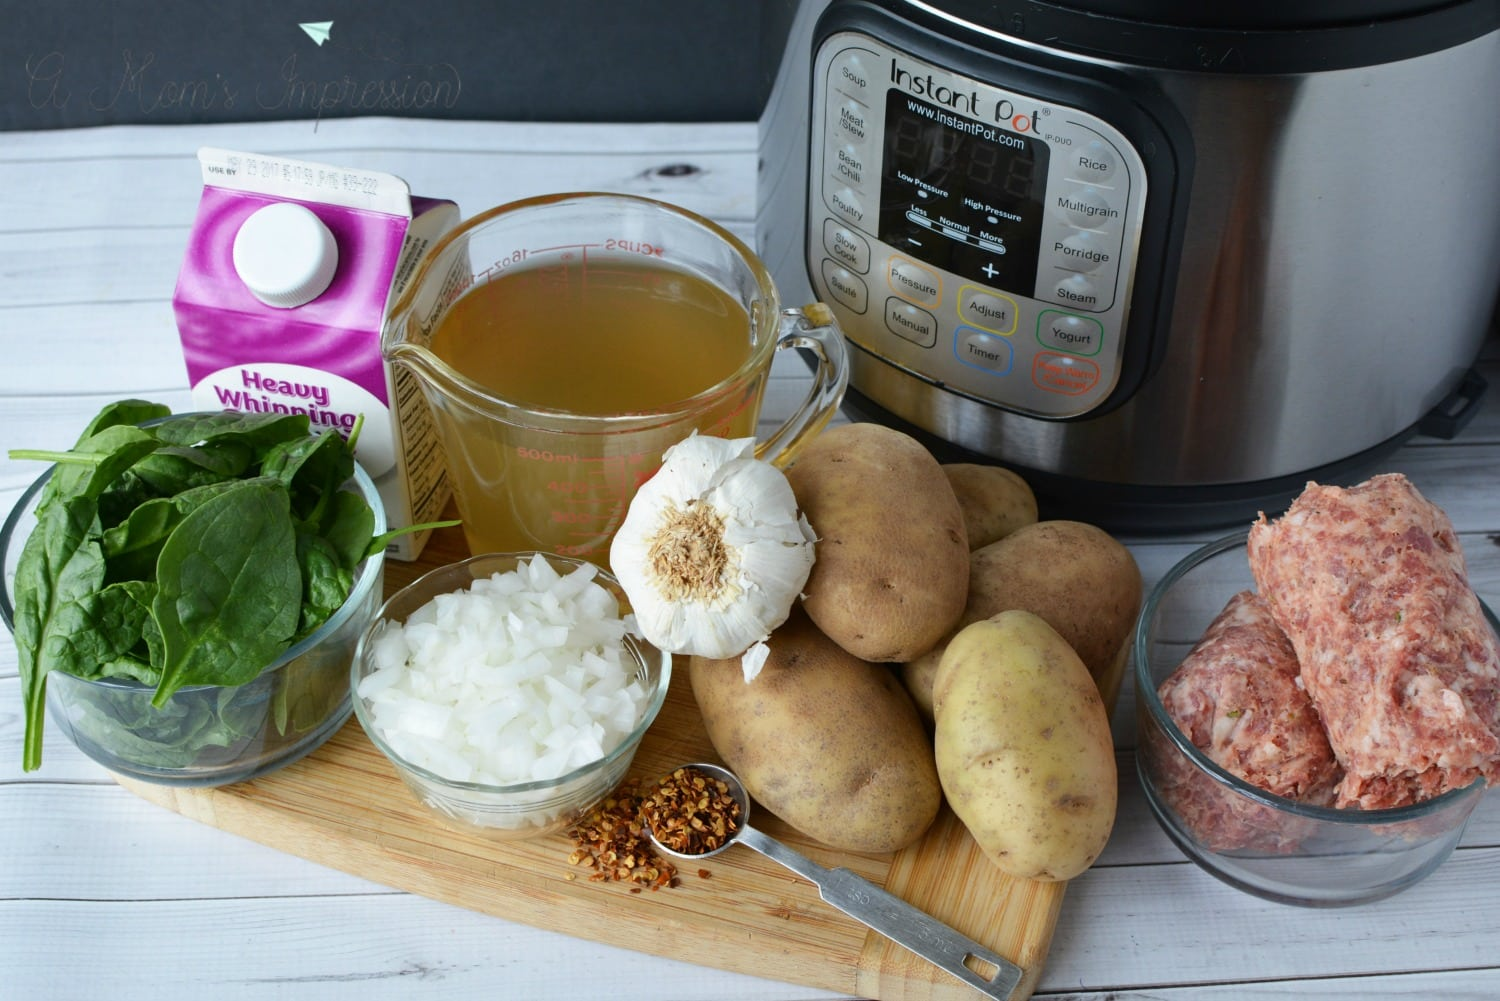 With different ingredients from spinach and garlic to potatoes, you may need different instant pot sizes.